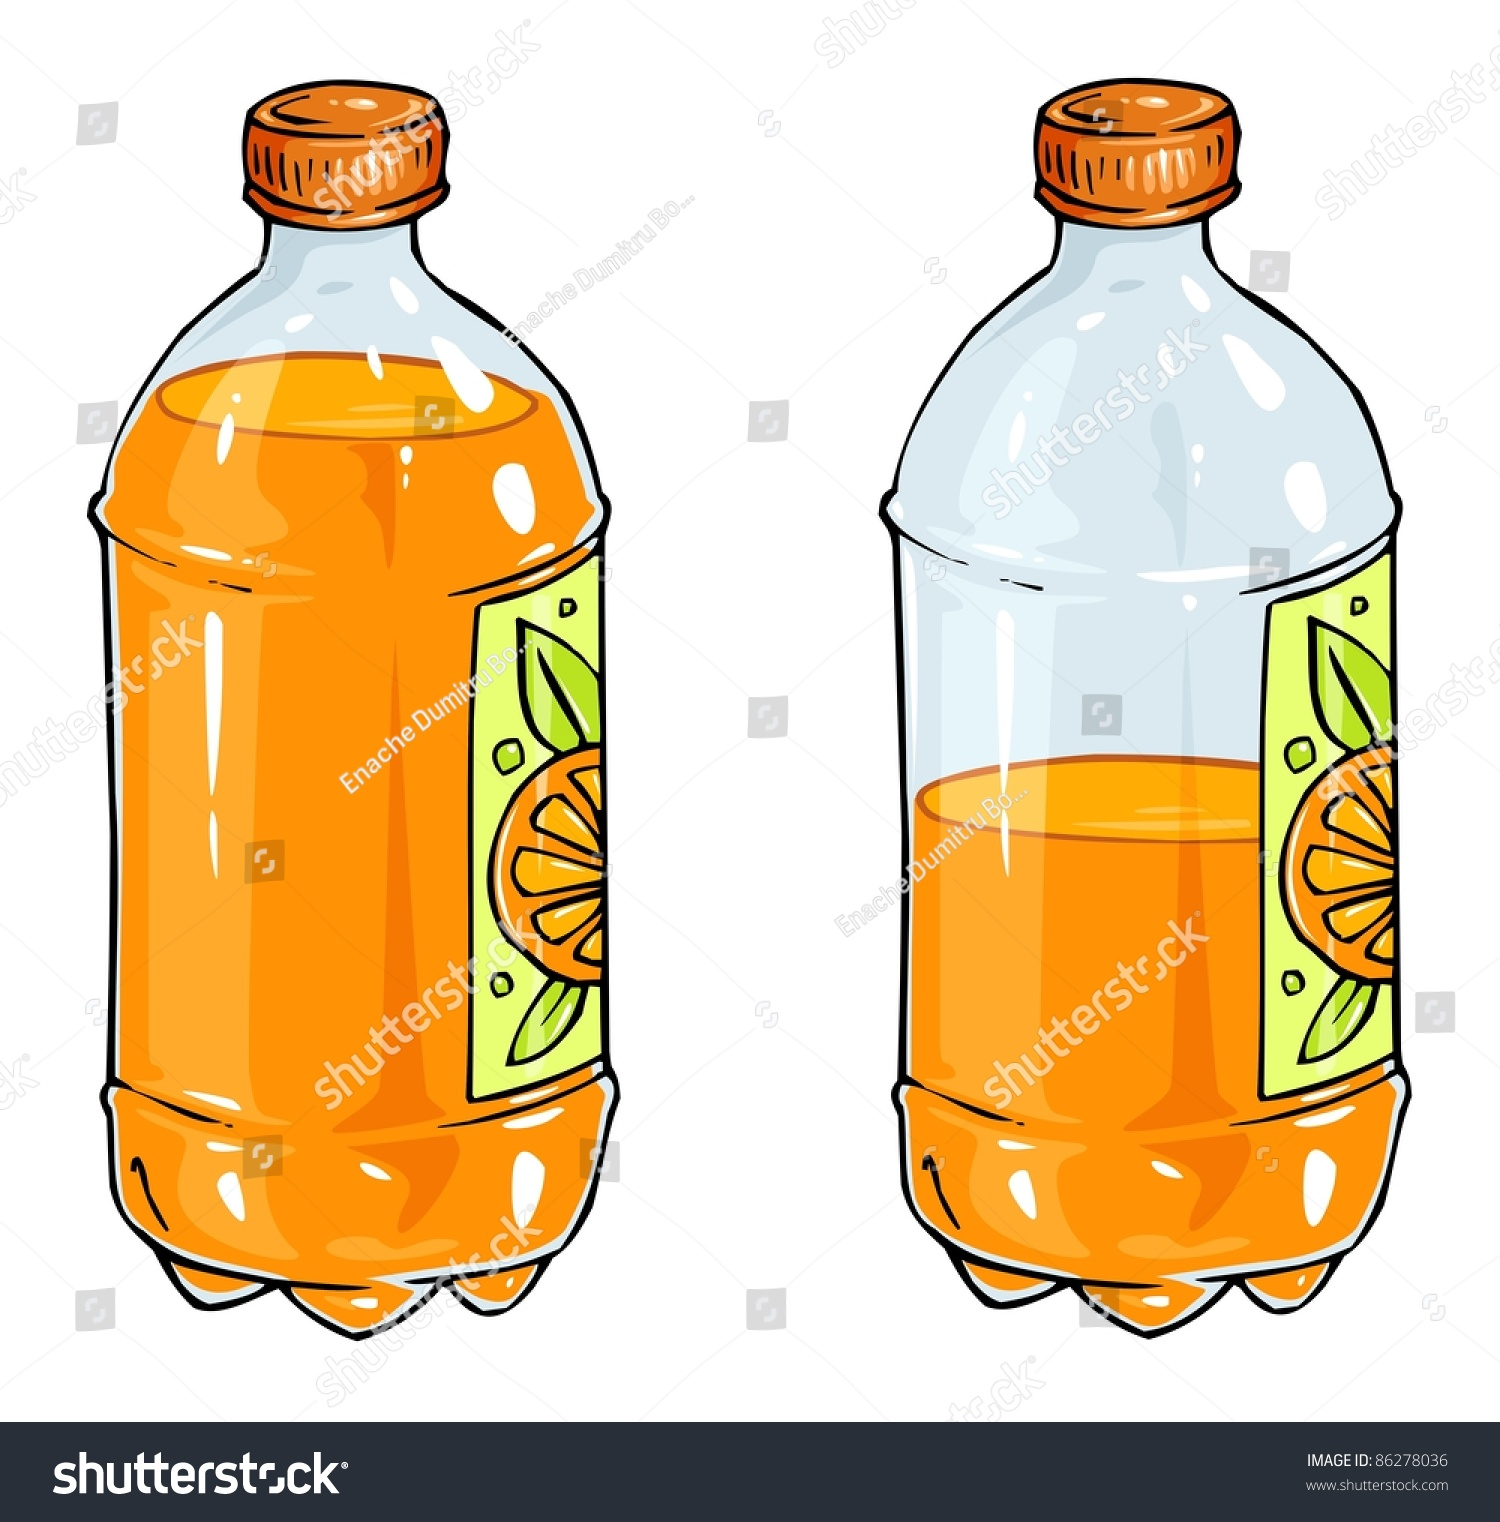 Orange Juice Bottle Stock Vector 86278036 - Shutterstock